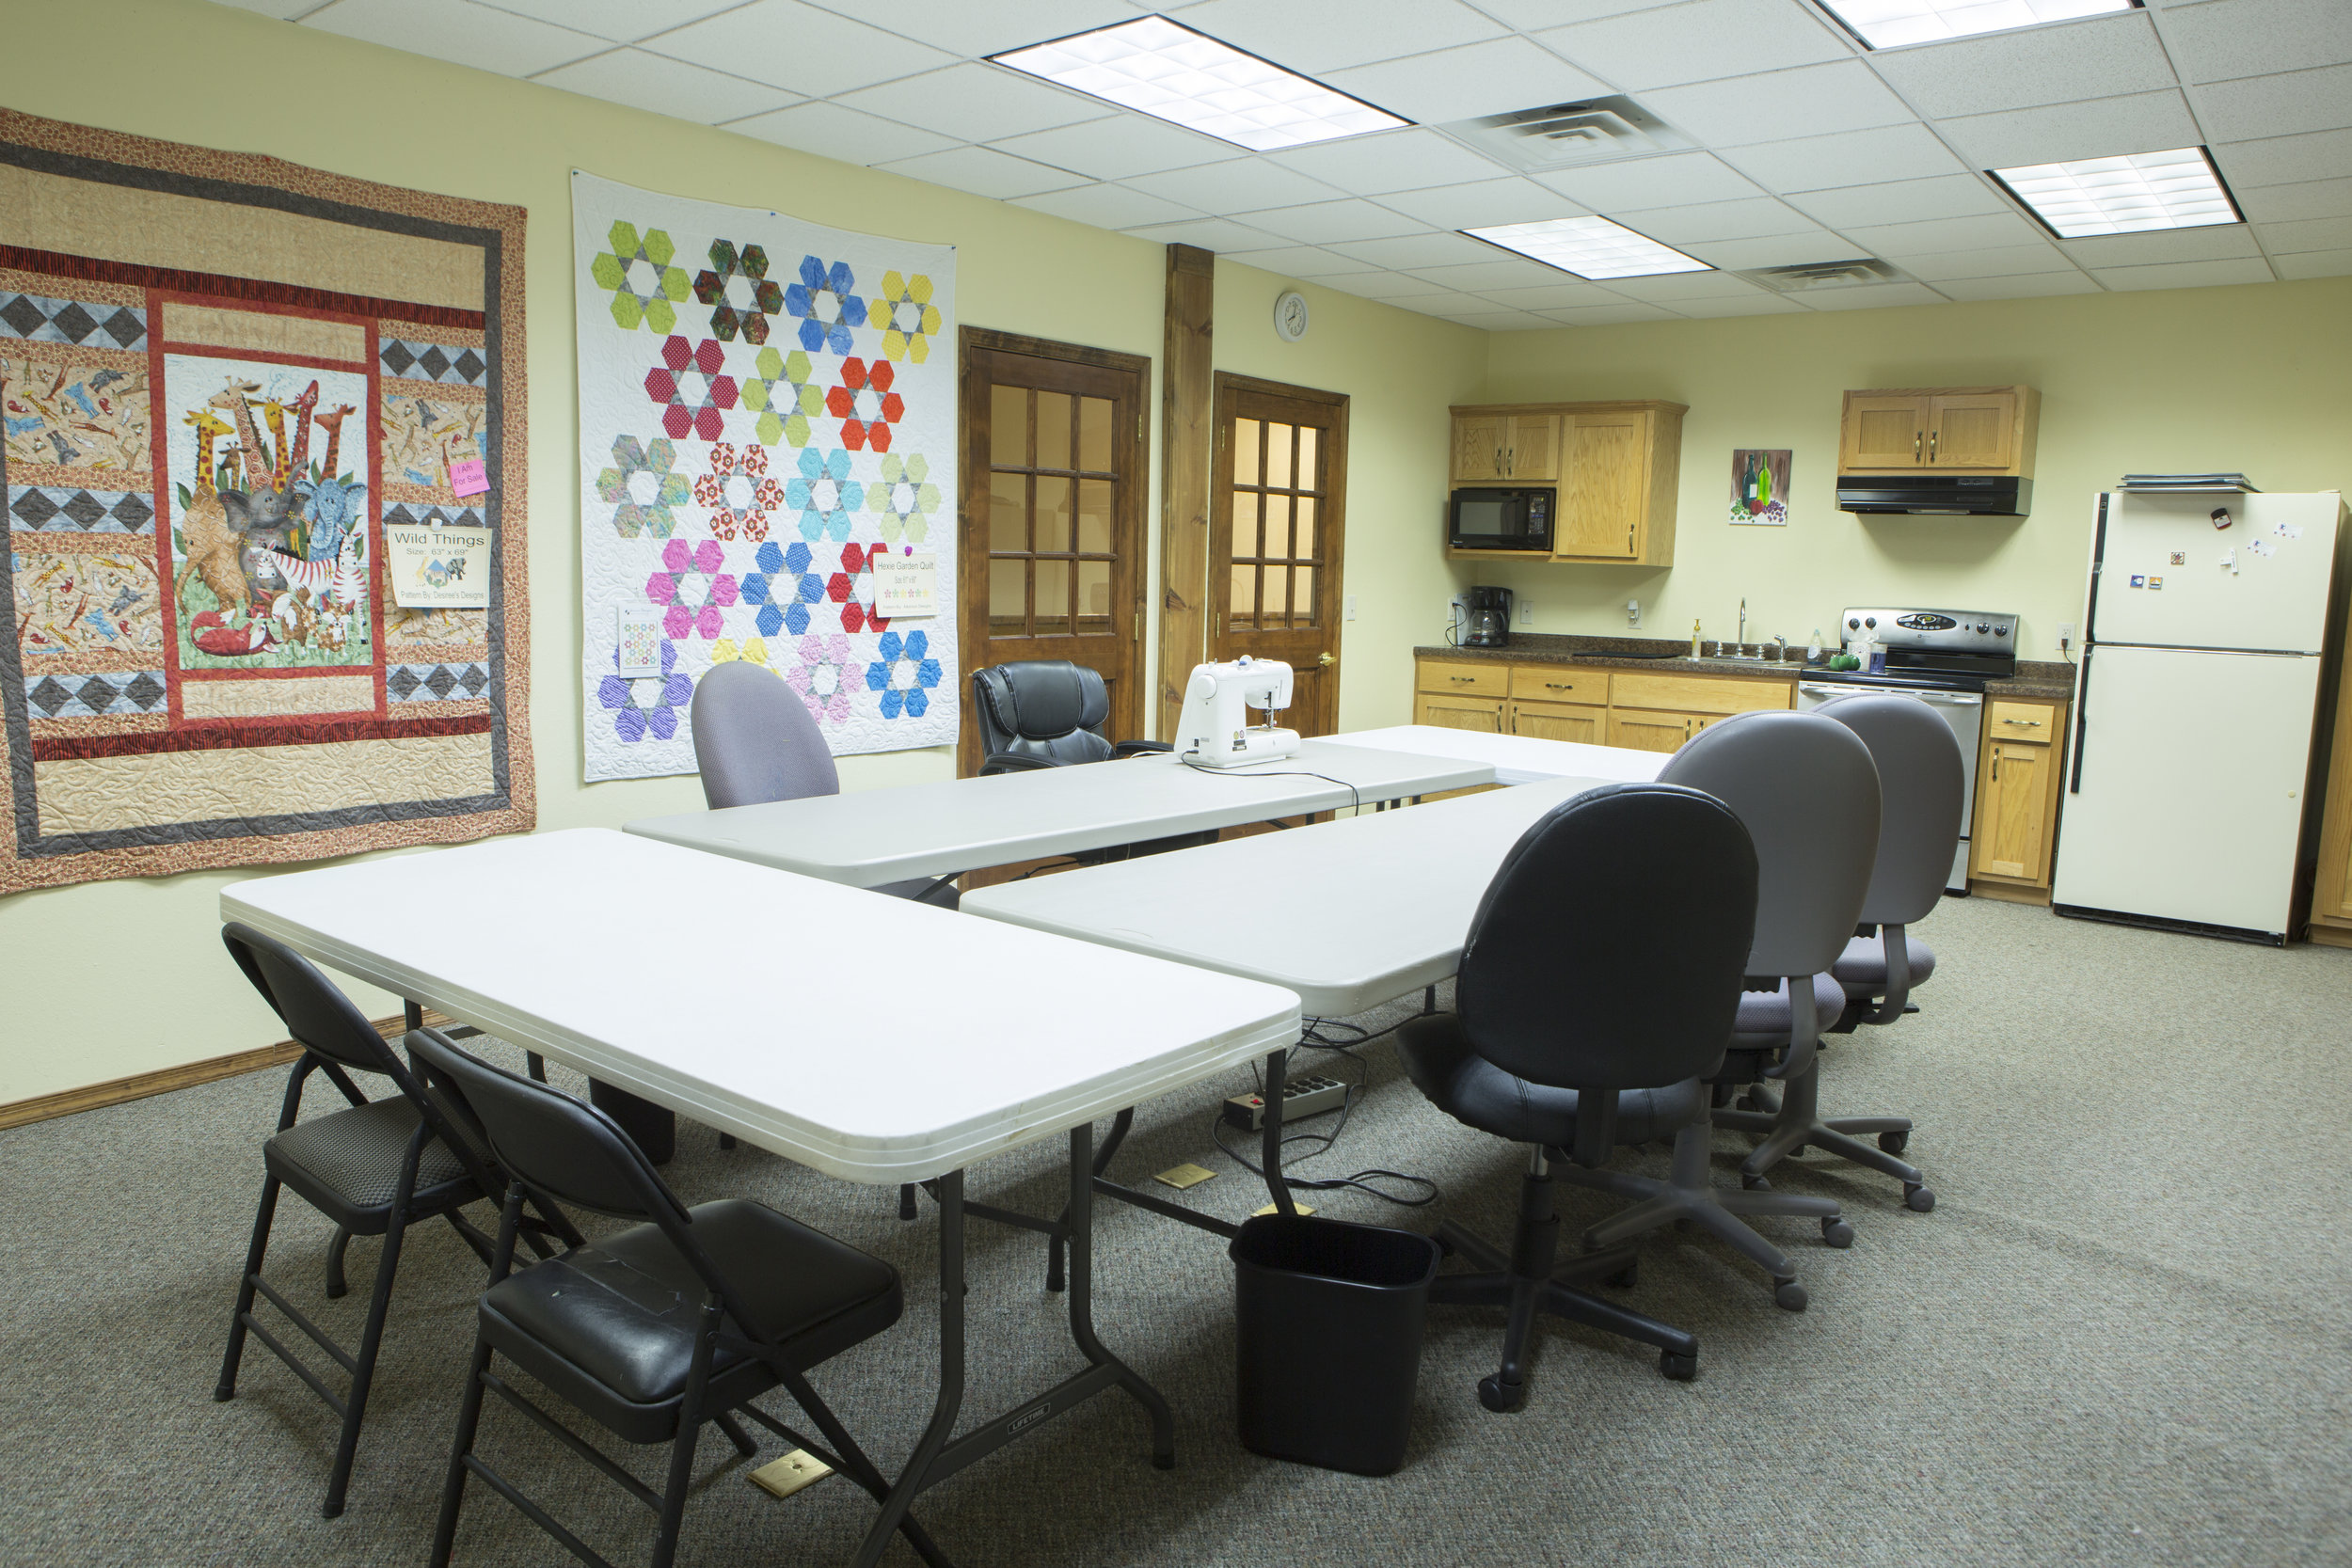 Work Room - Includes: 2 irons and ironing boards, cutting table and mat, and space for 8 people.